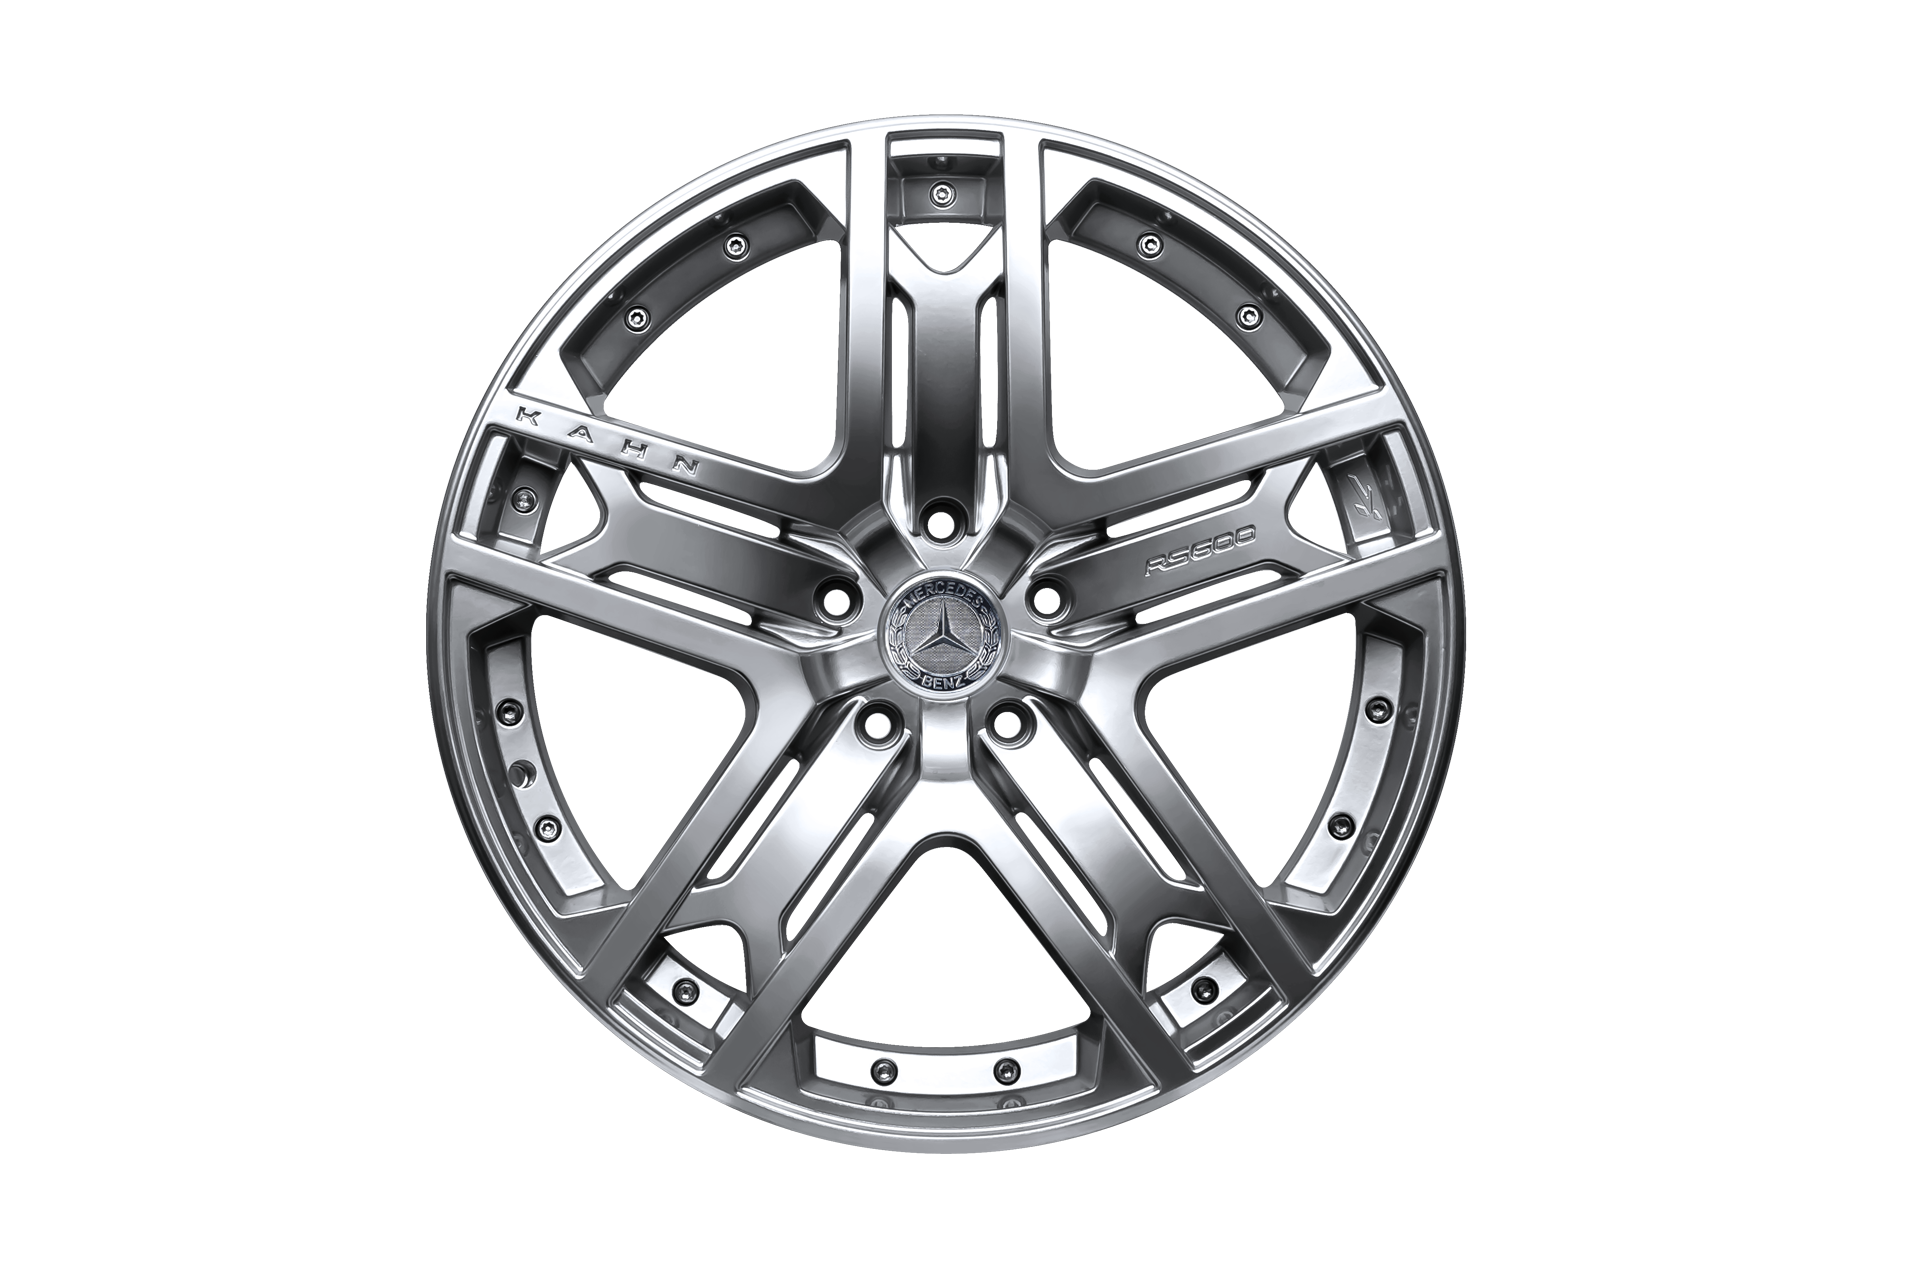 Mercedes Ml (2011-2015) Rs600 Light Alloy Wheels by Kahn - Image 3597